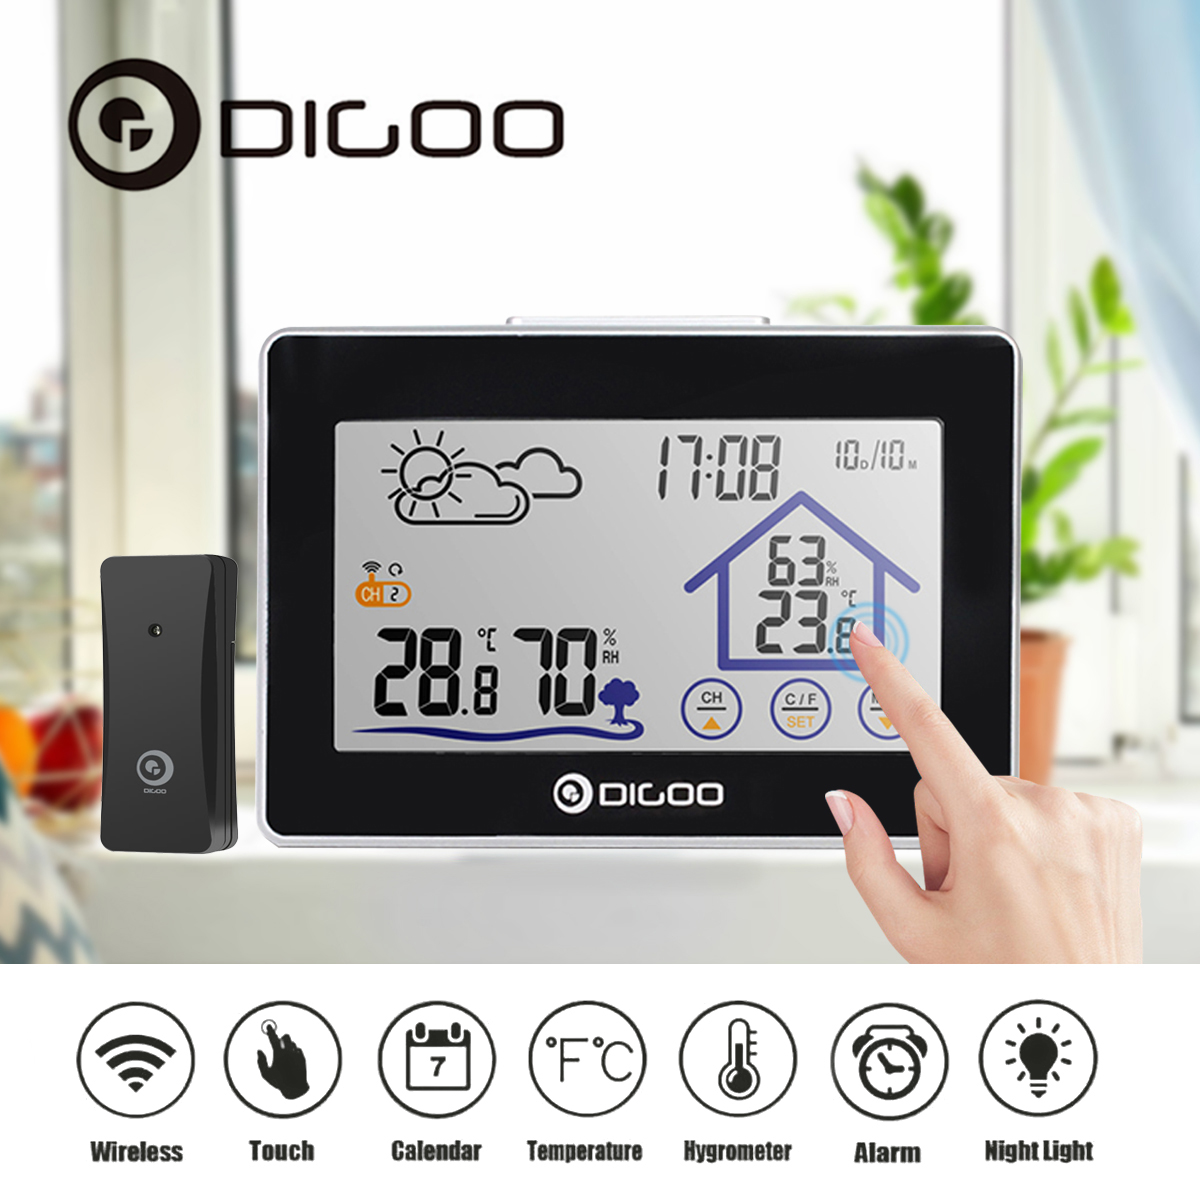 Digoo Touch Screen Wireless Weather Forecast Station Back-Light Time Date Display Humidity Temperature Meter Monitor Thermometer Hygrometer Clock